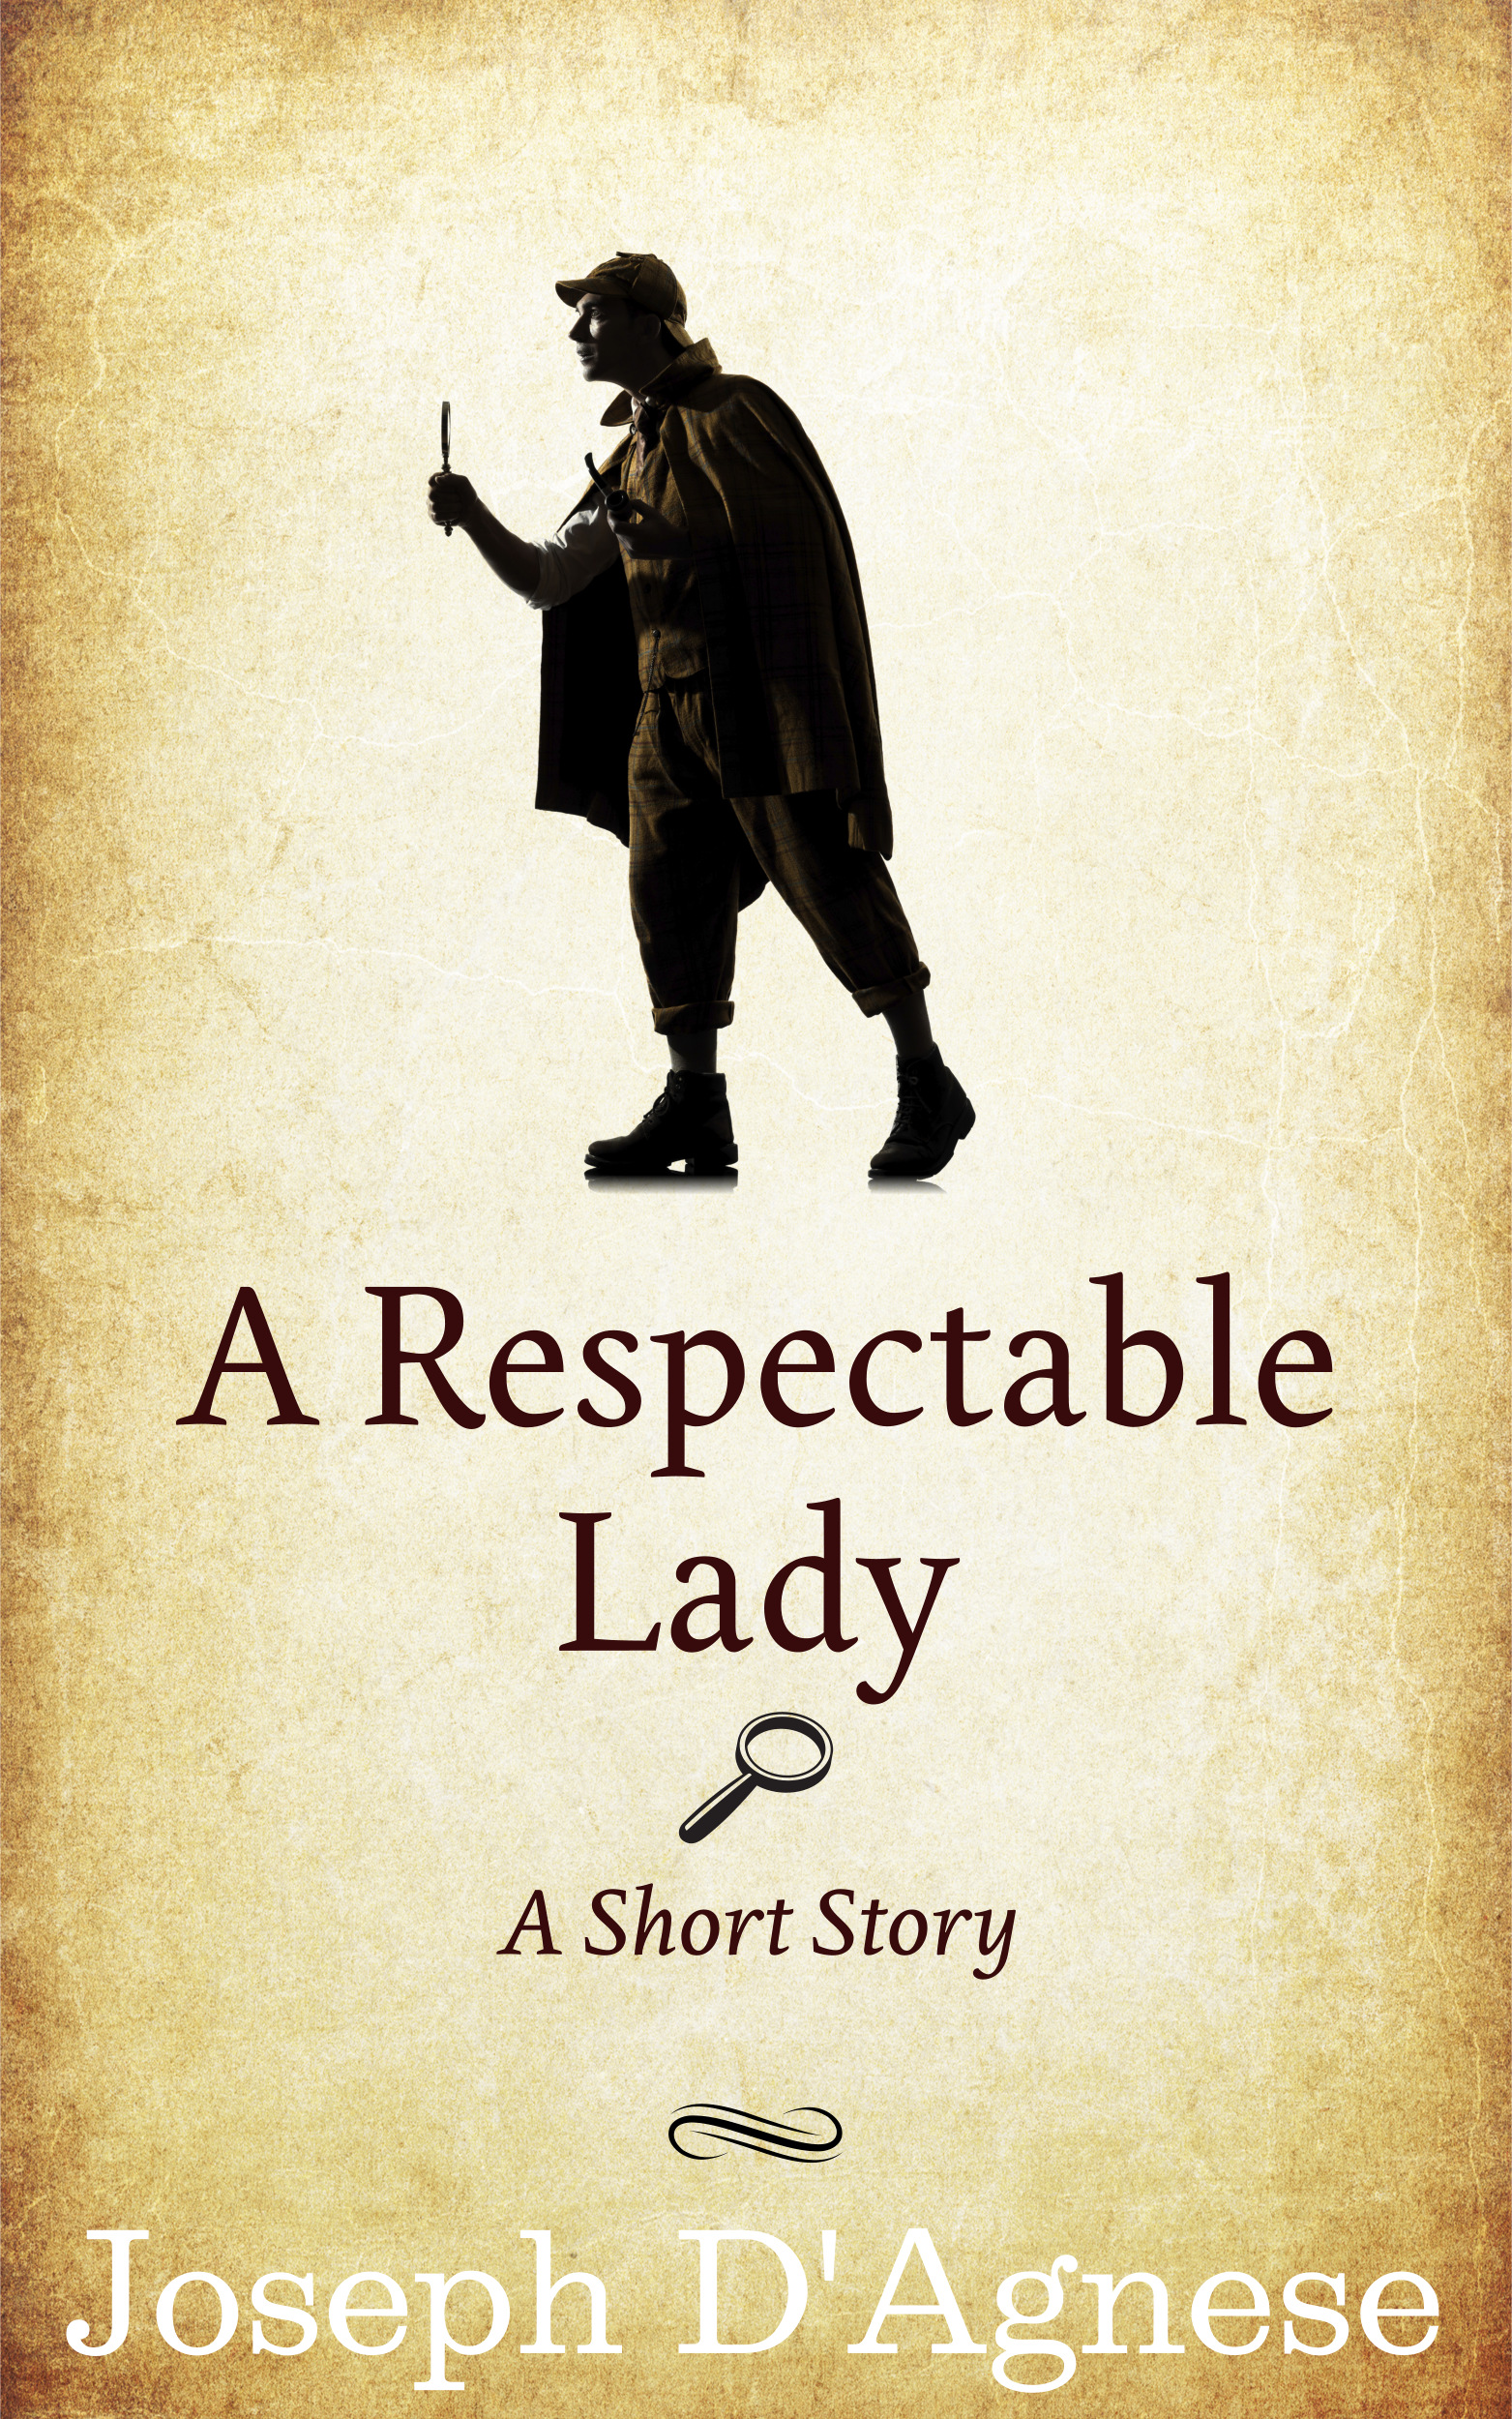 A Respectable-Lady by Joseph D'Agnese